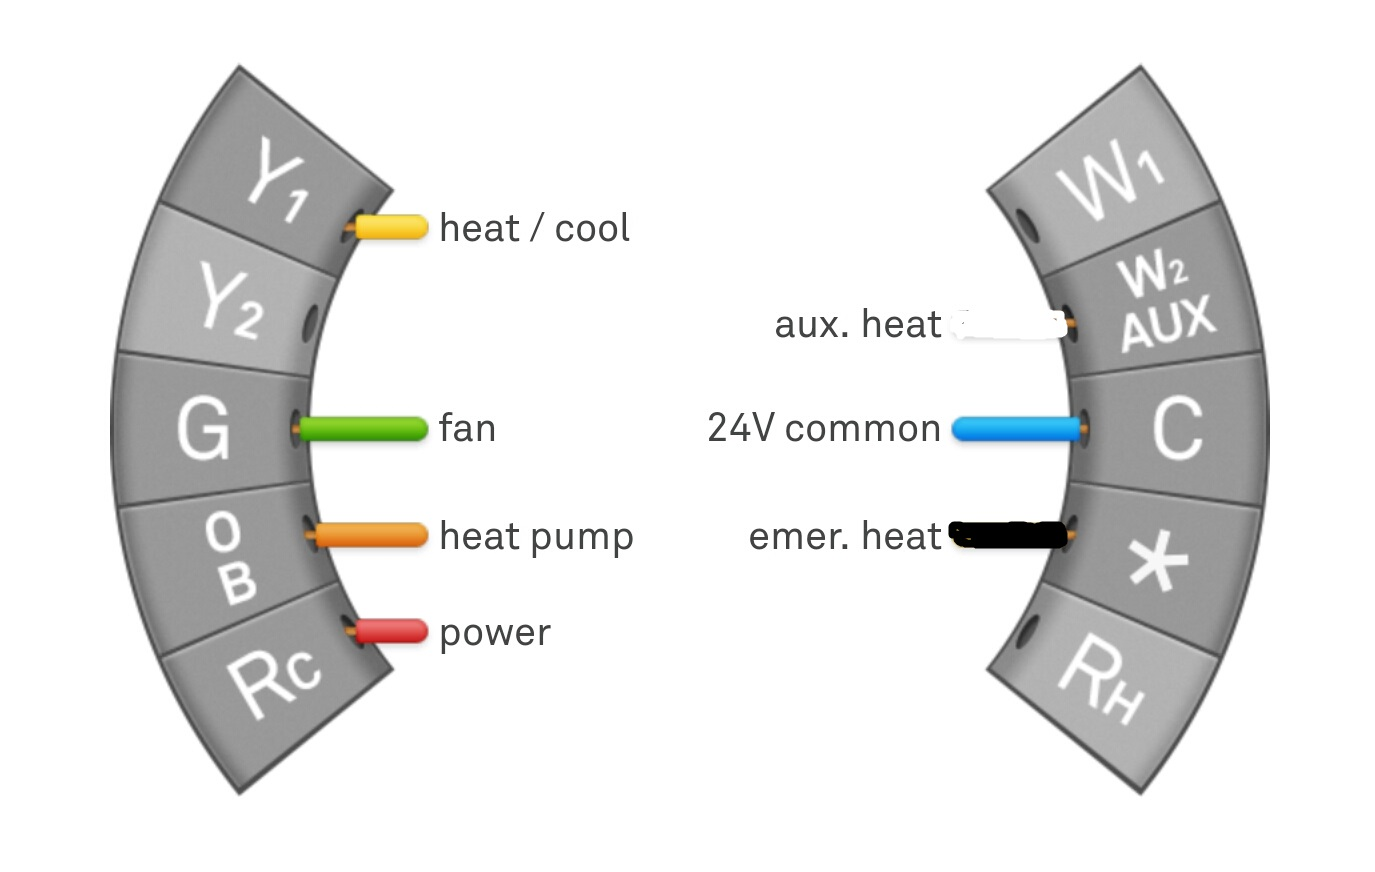 nest radiant heat wiring diagram wiring diagram blog nest thermostat heat pump wiring diagram heat pump [ 1375 x 872 Pixel ]